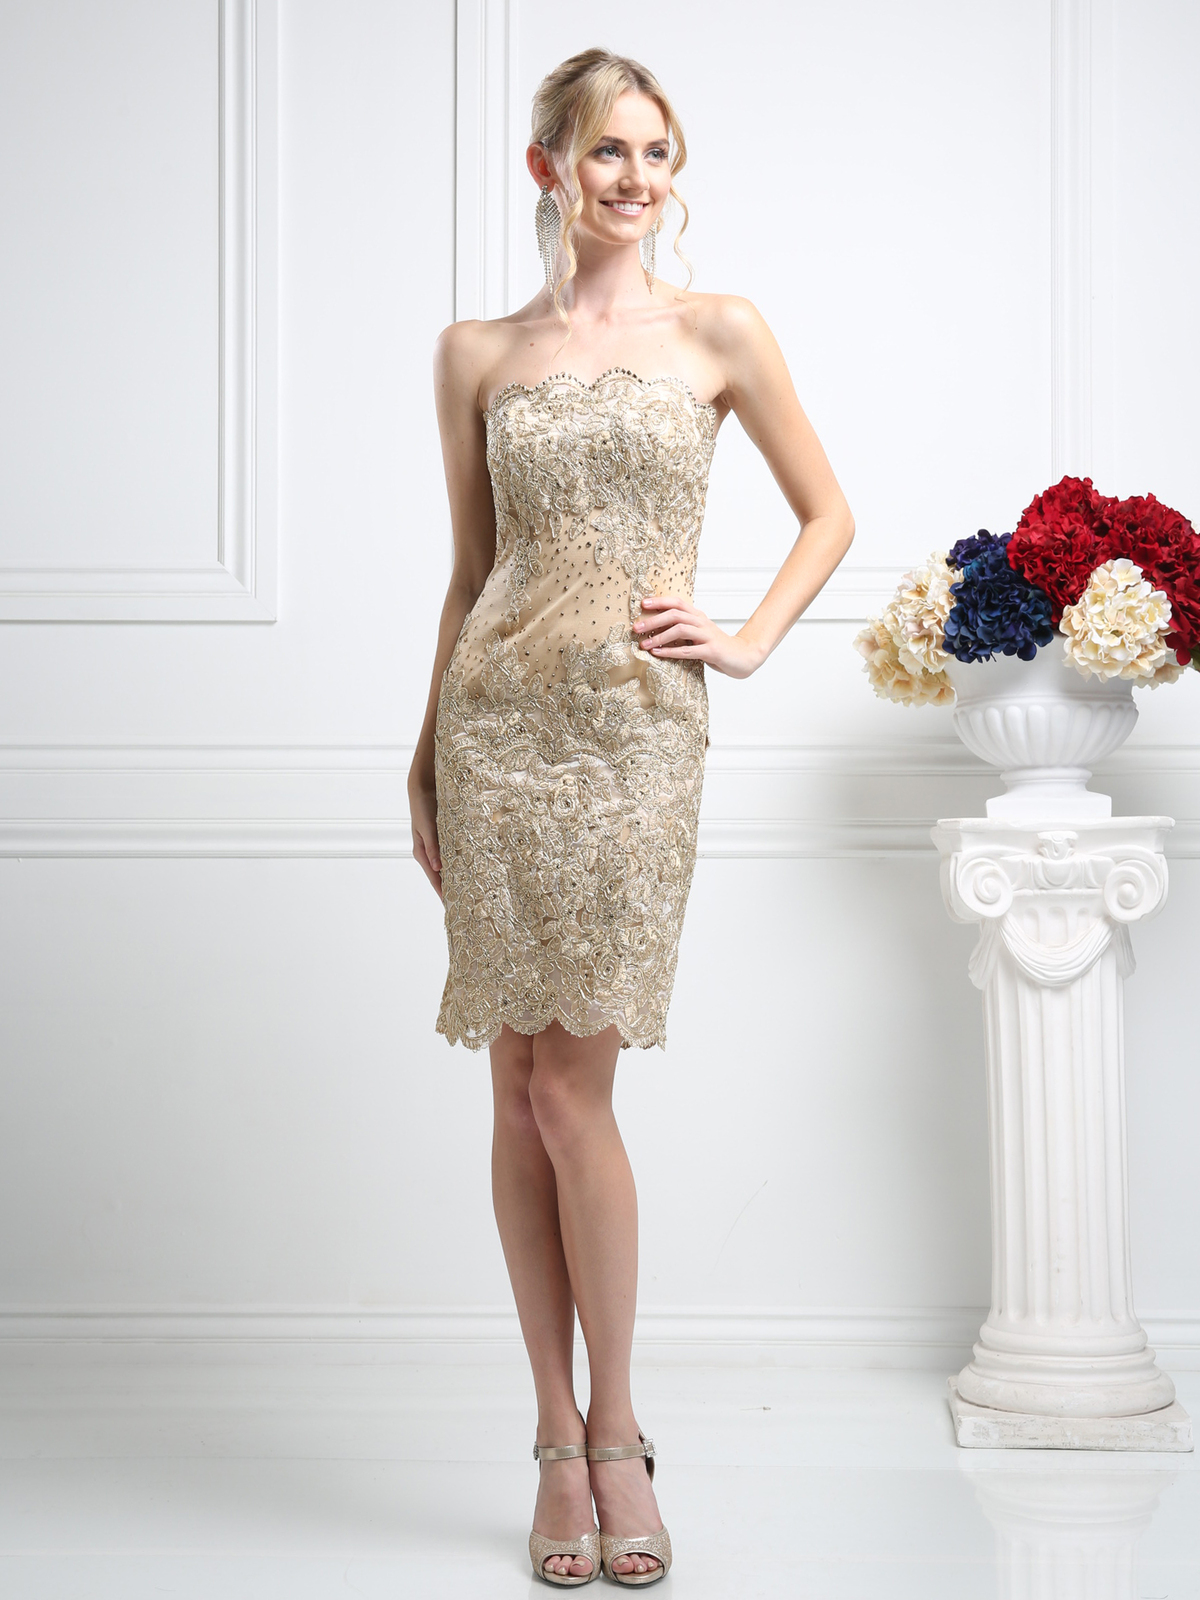 Strapless Cocktail Dress with Rosette Applique Design | Sung ...